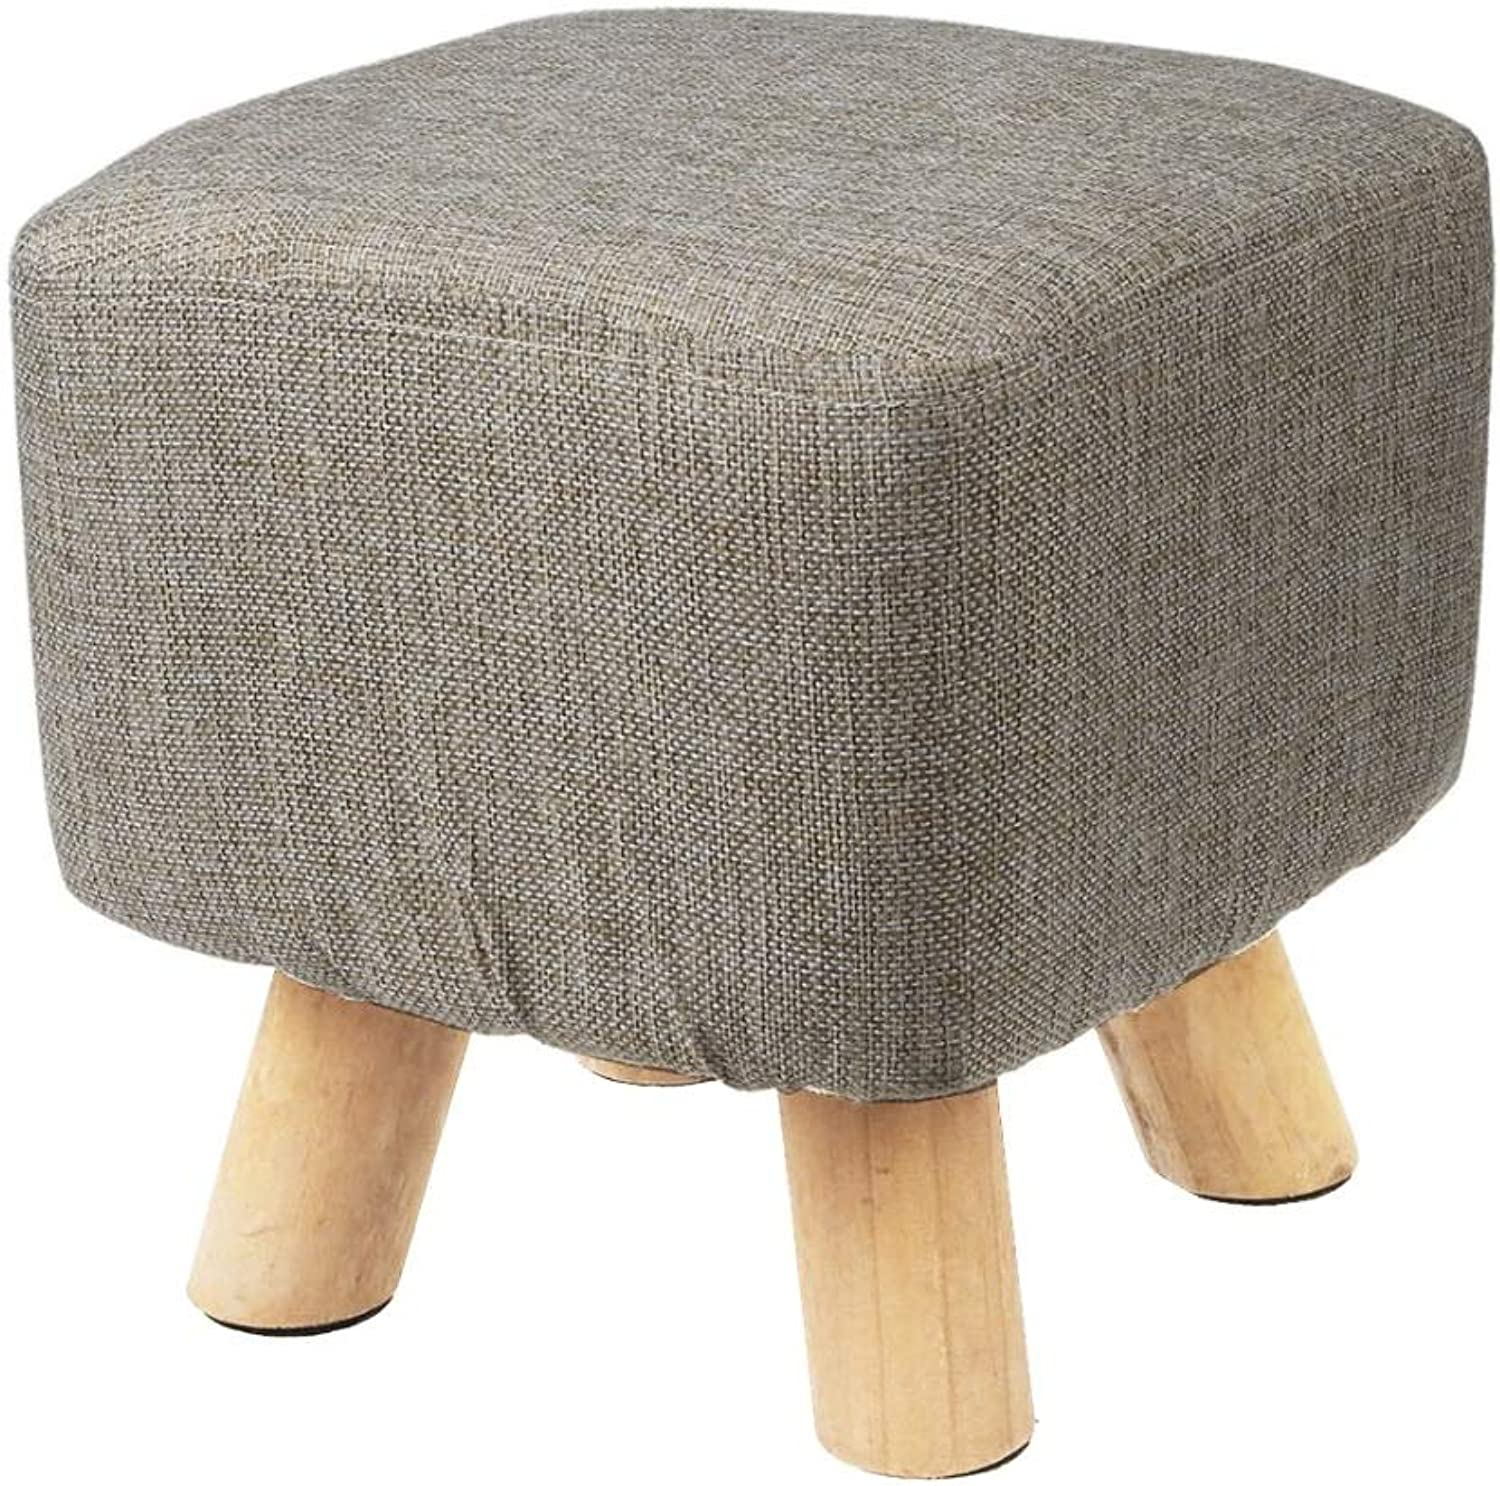 YJLGRYF Small Square Stool Simple Footstool Solid Wood shoes Bench Sofa Stool shoes Bench Fabric Stool